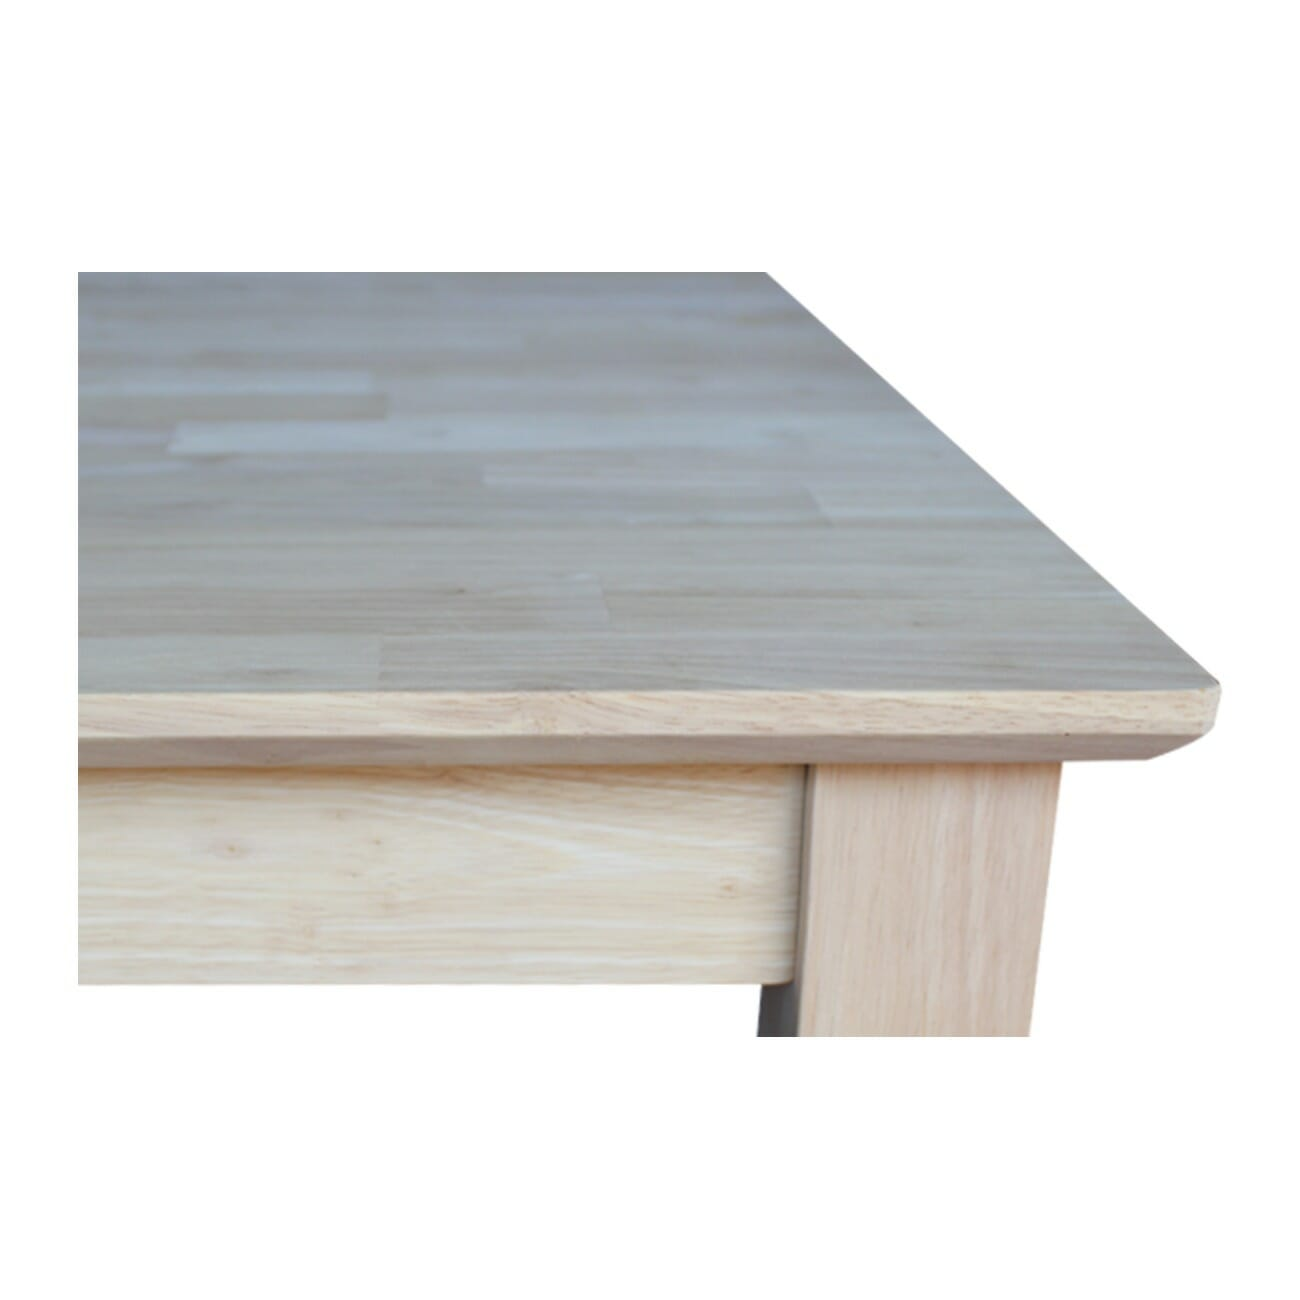 parawood 36 x 36 square table